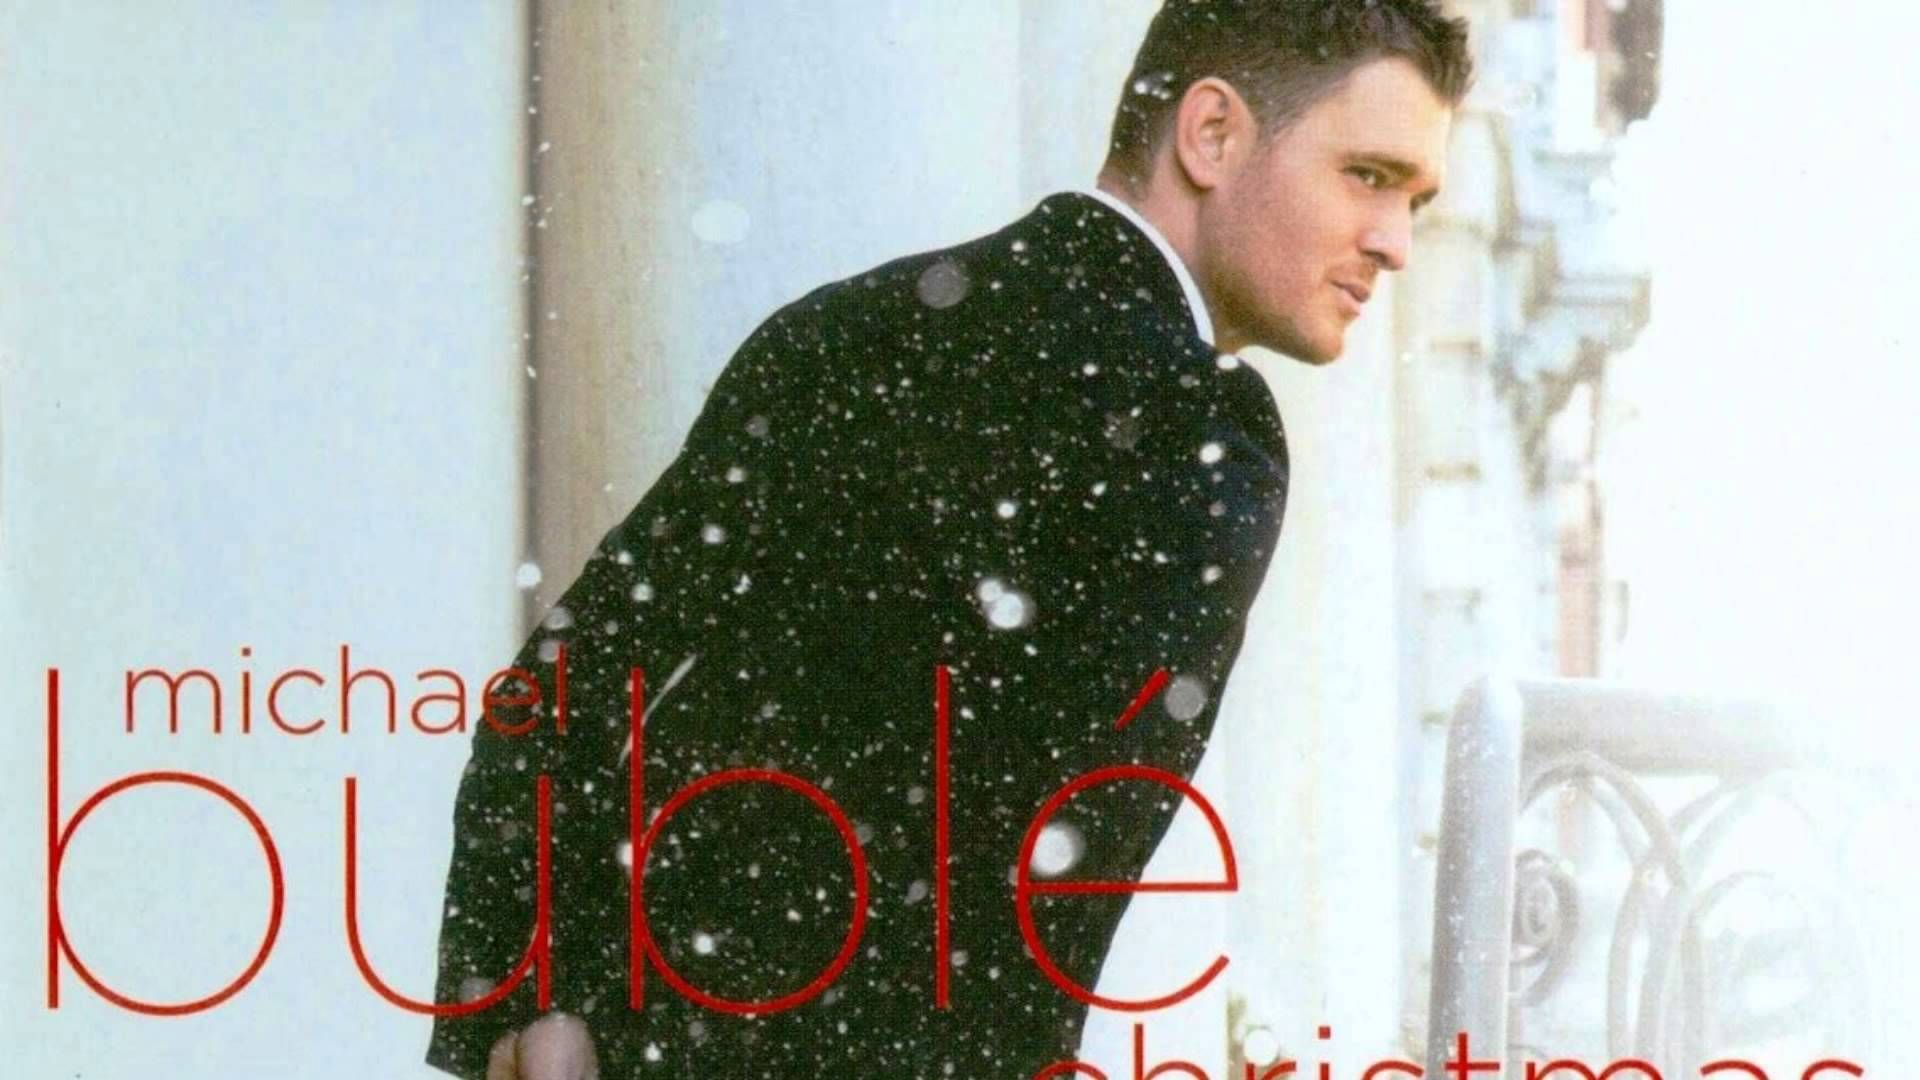 01 Michael Bublé It's Beginning To Look A Lot Like